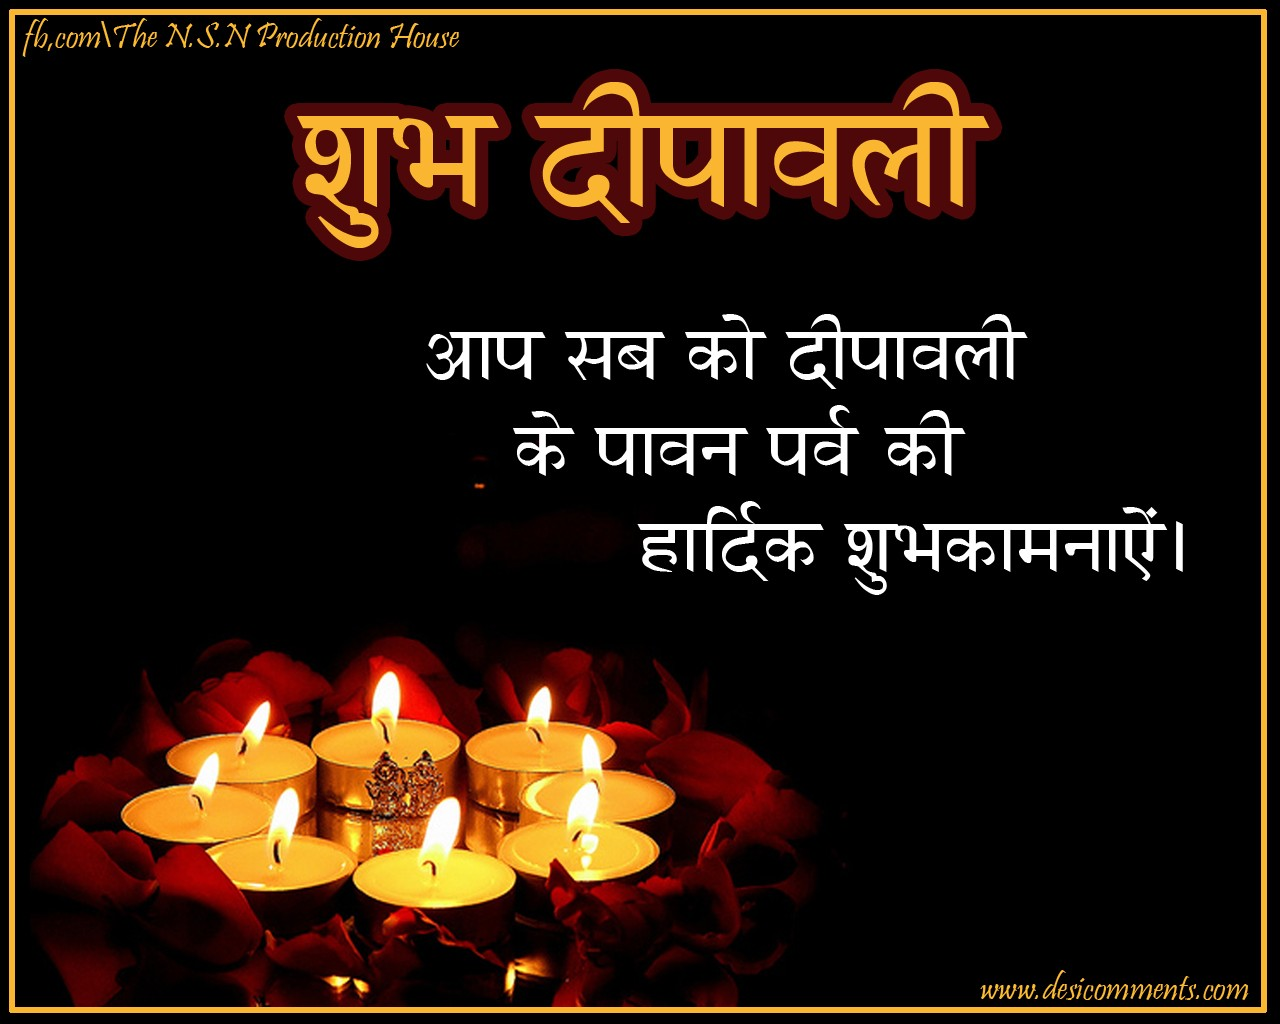 Sad Love Quotes Wallpapers Free Download In Hindi Happy Diwali Desicomments Com